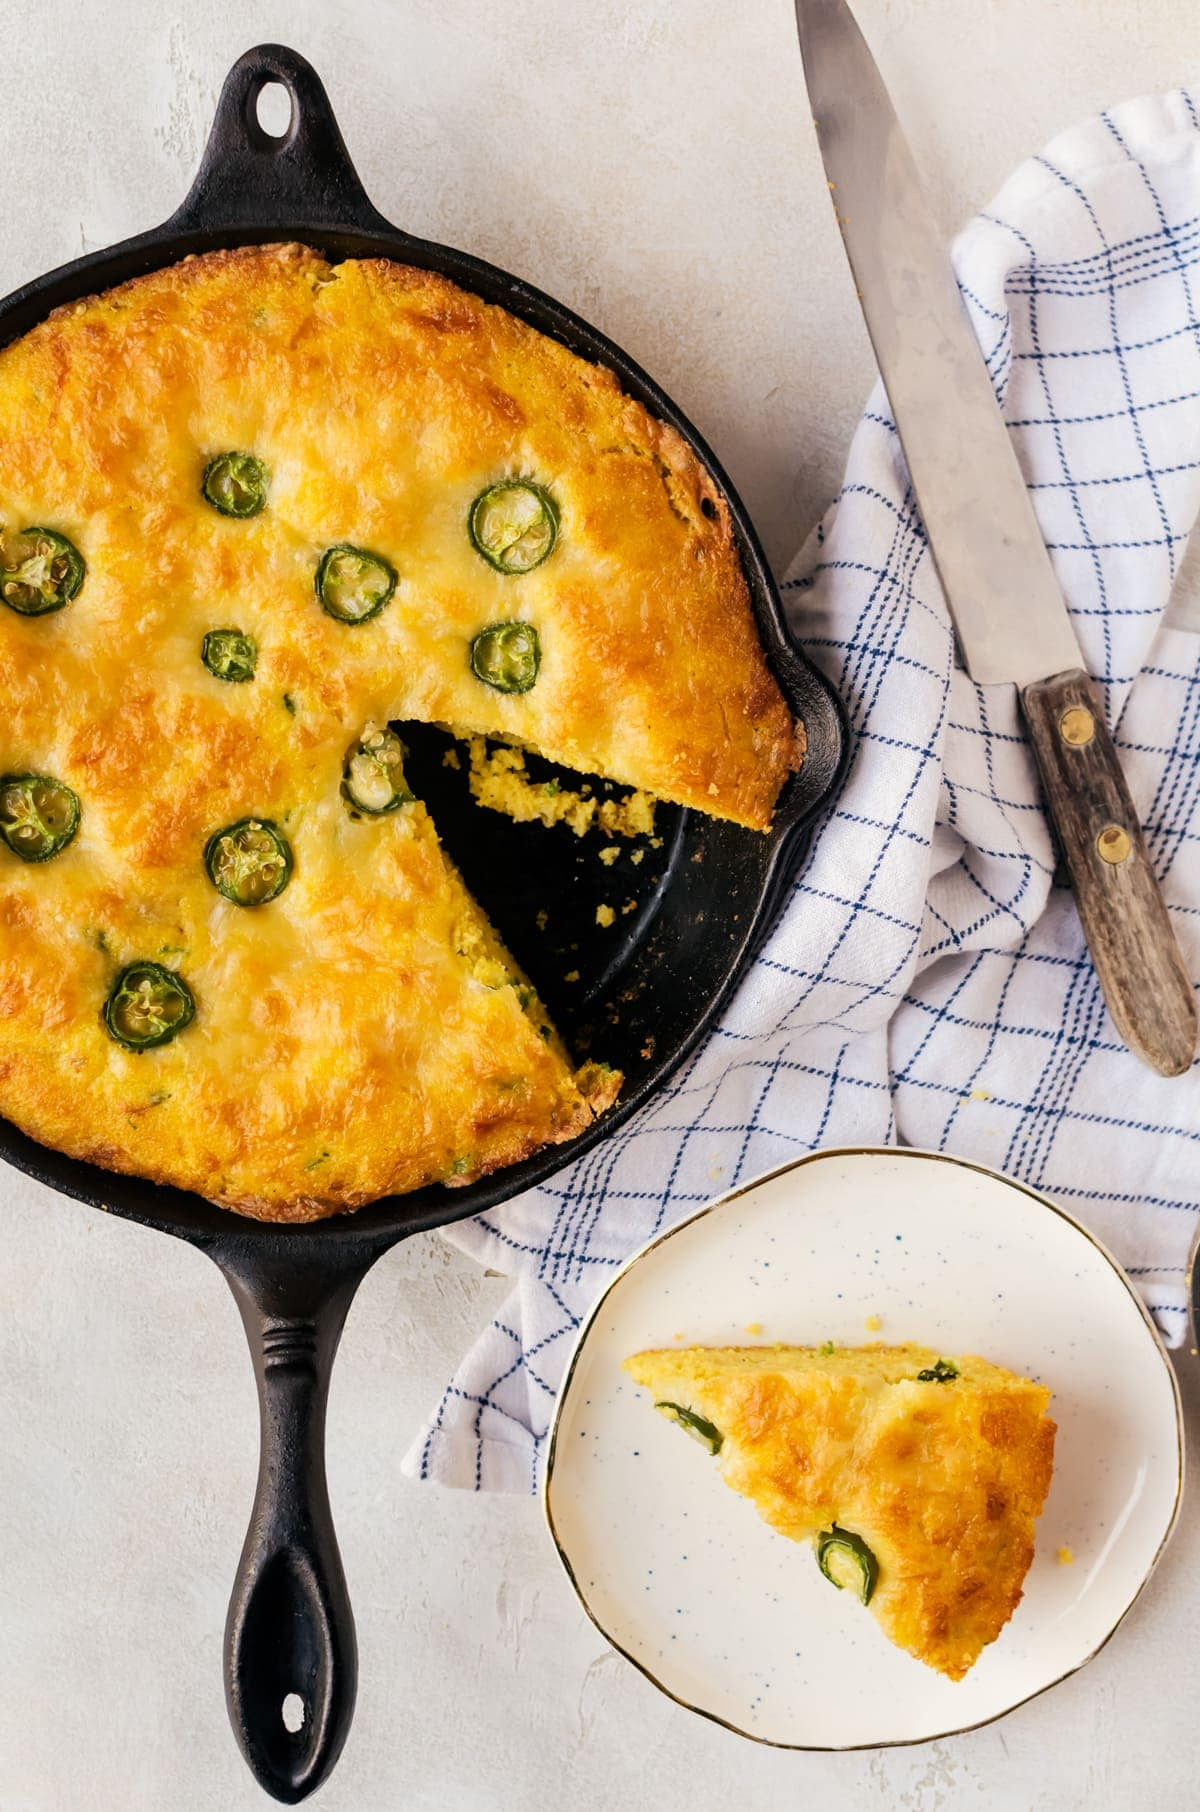 cornbread in skillet with slice on white plate